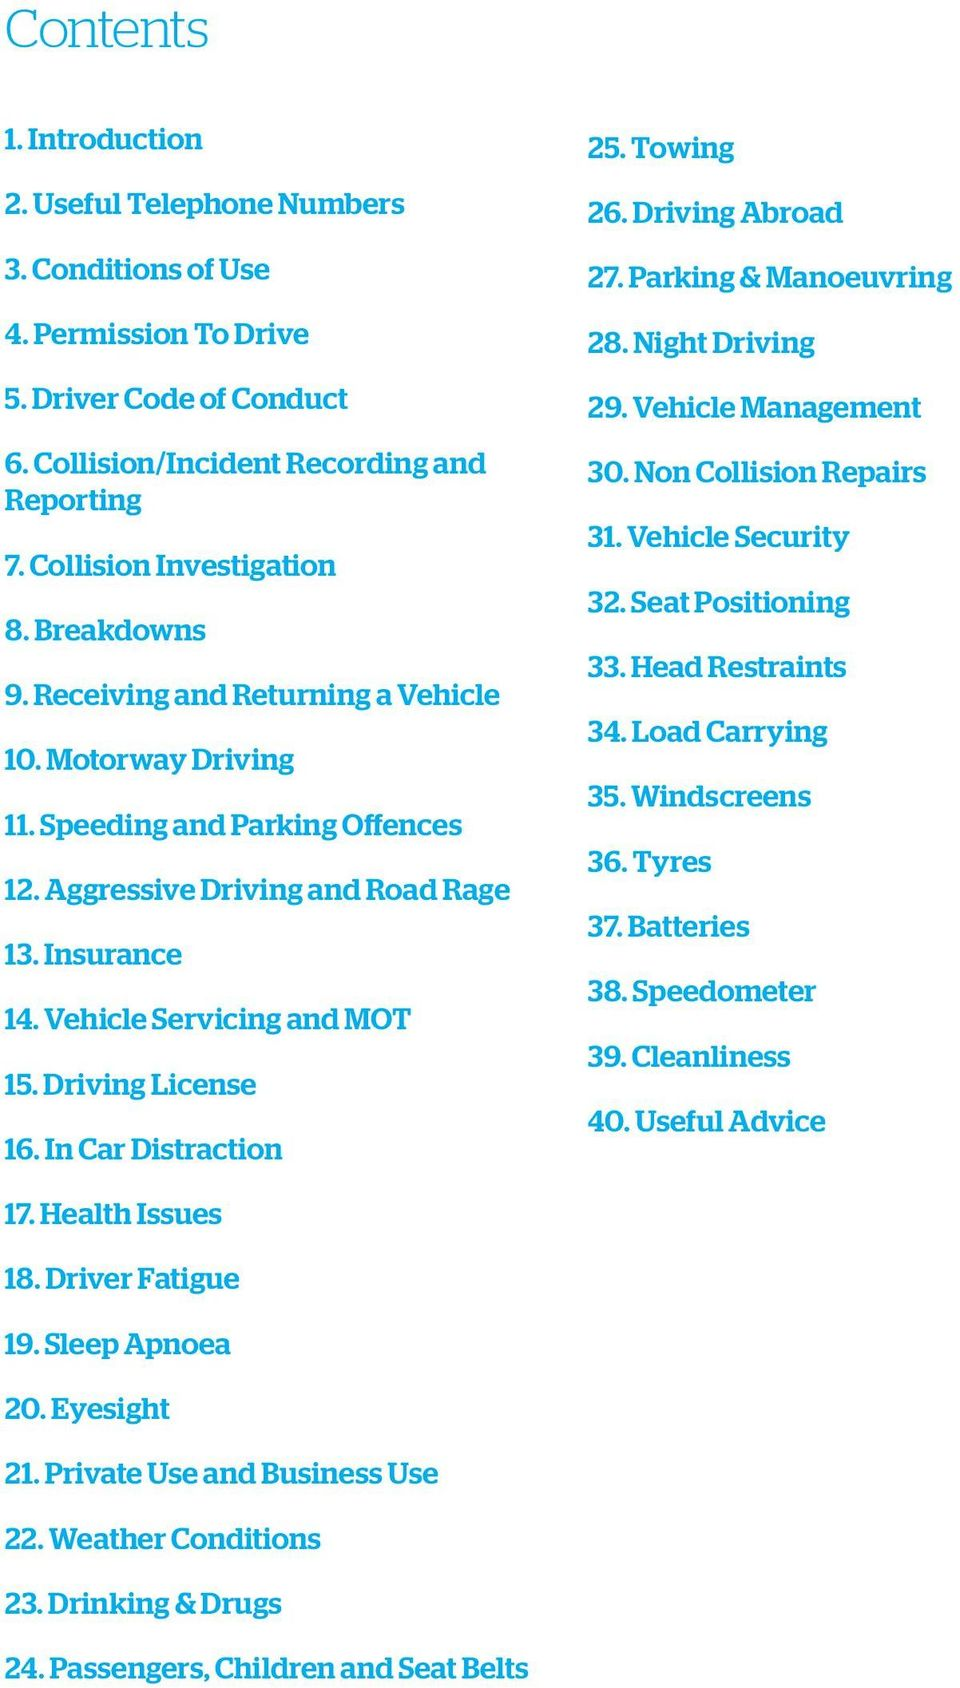 Driving License 16. In Car Distraction 25. Towing 26. Driving Abroad 27. Parking & Manoeuvring 28. Night Driving 29. Vehicle Management 30. Non Collision Repairs 31. Vehicle Security 32.